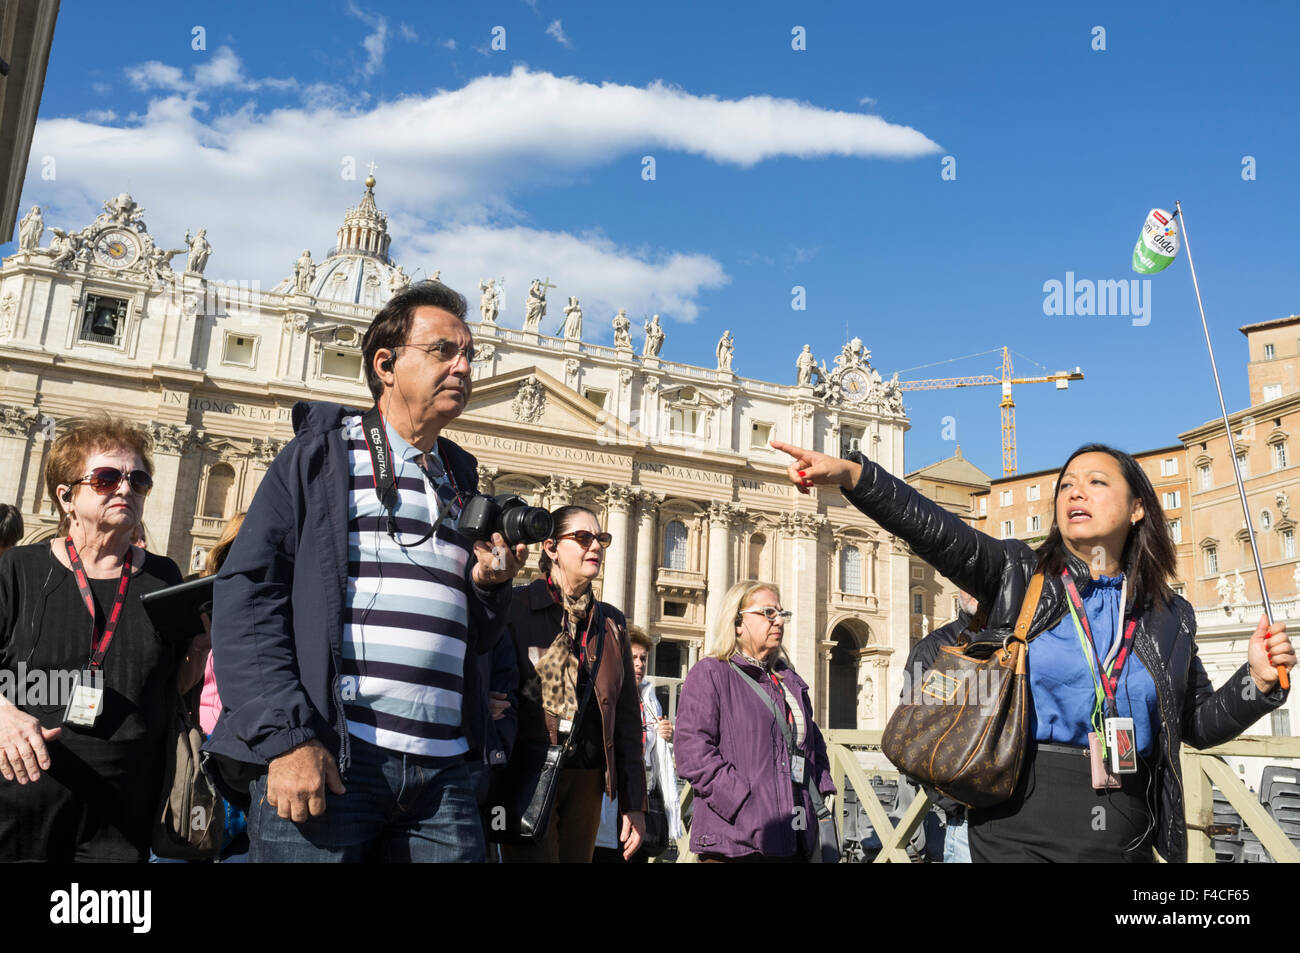 Sightseeing group and tour leader at St. Peter's square, Vatican city, Rome, Italy - Stock Image